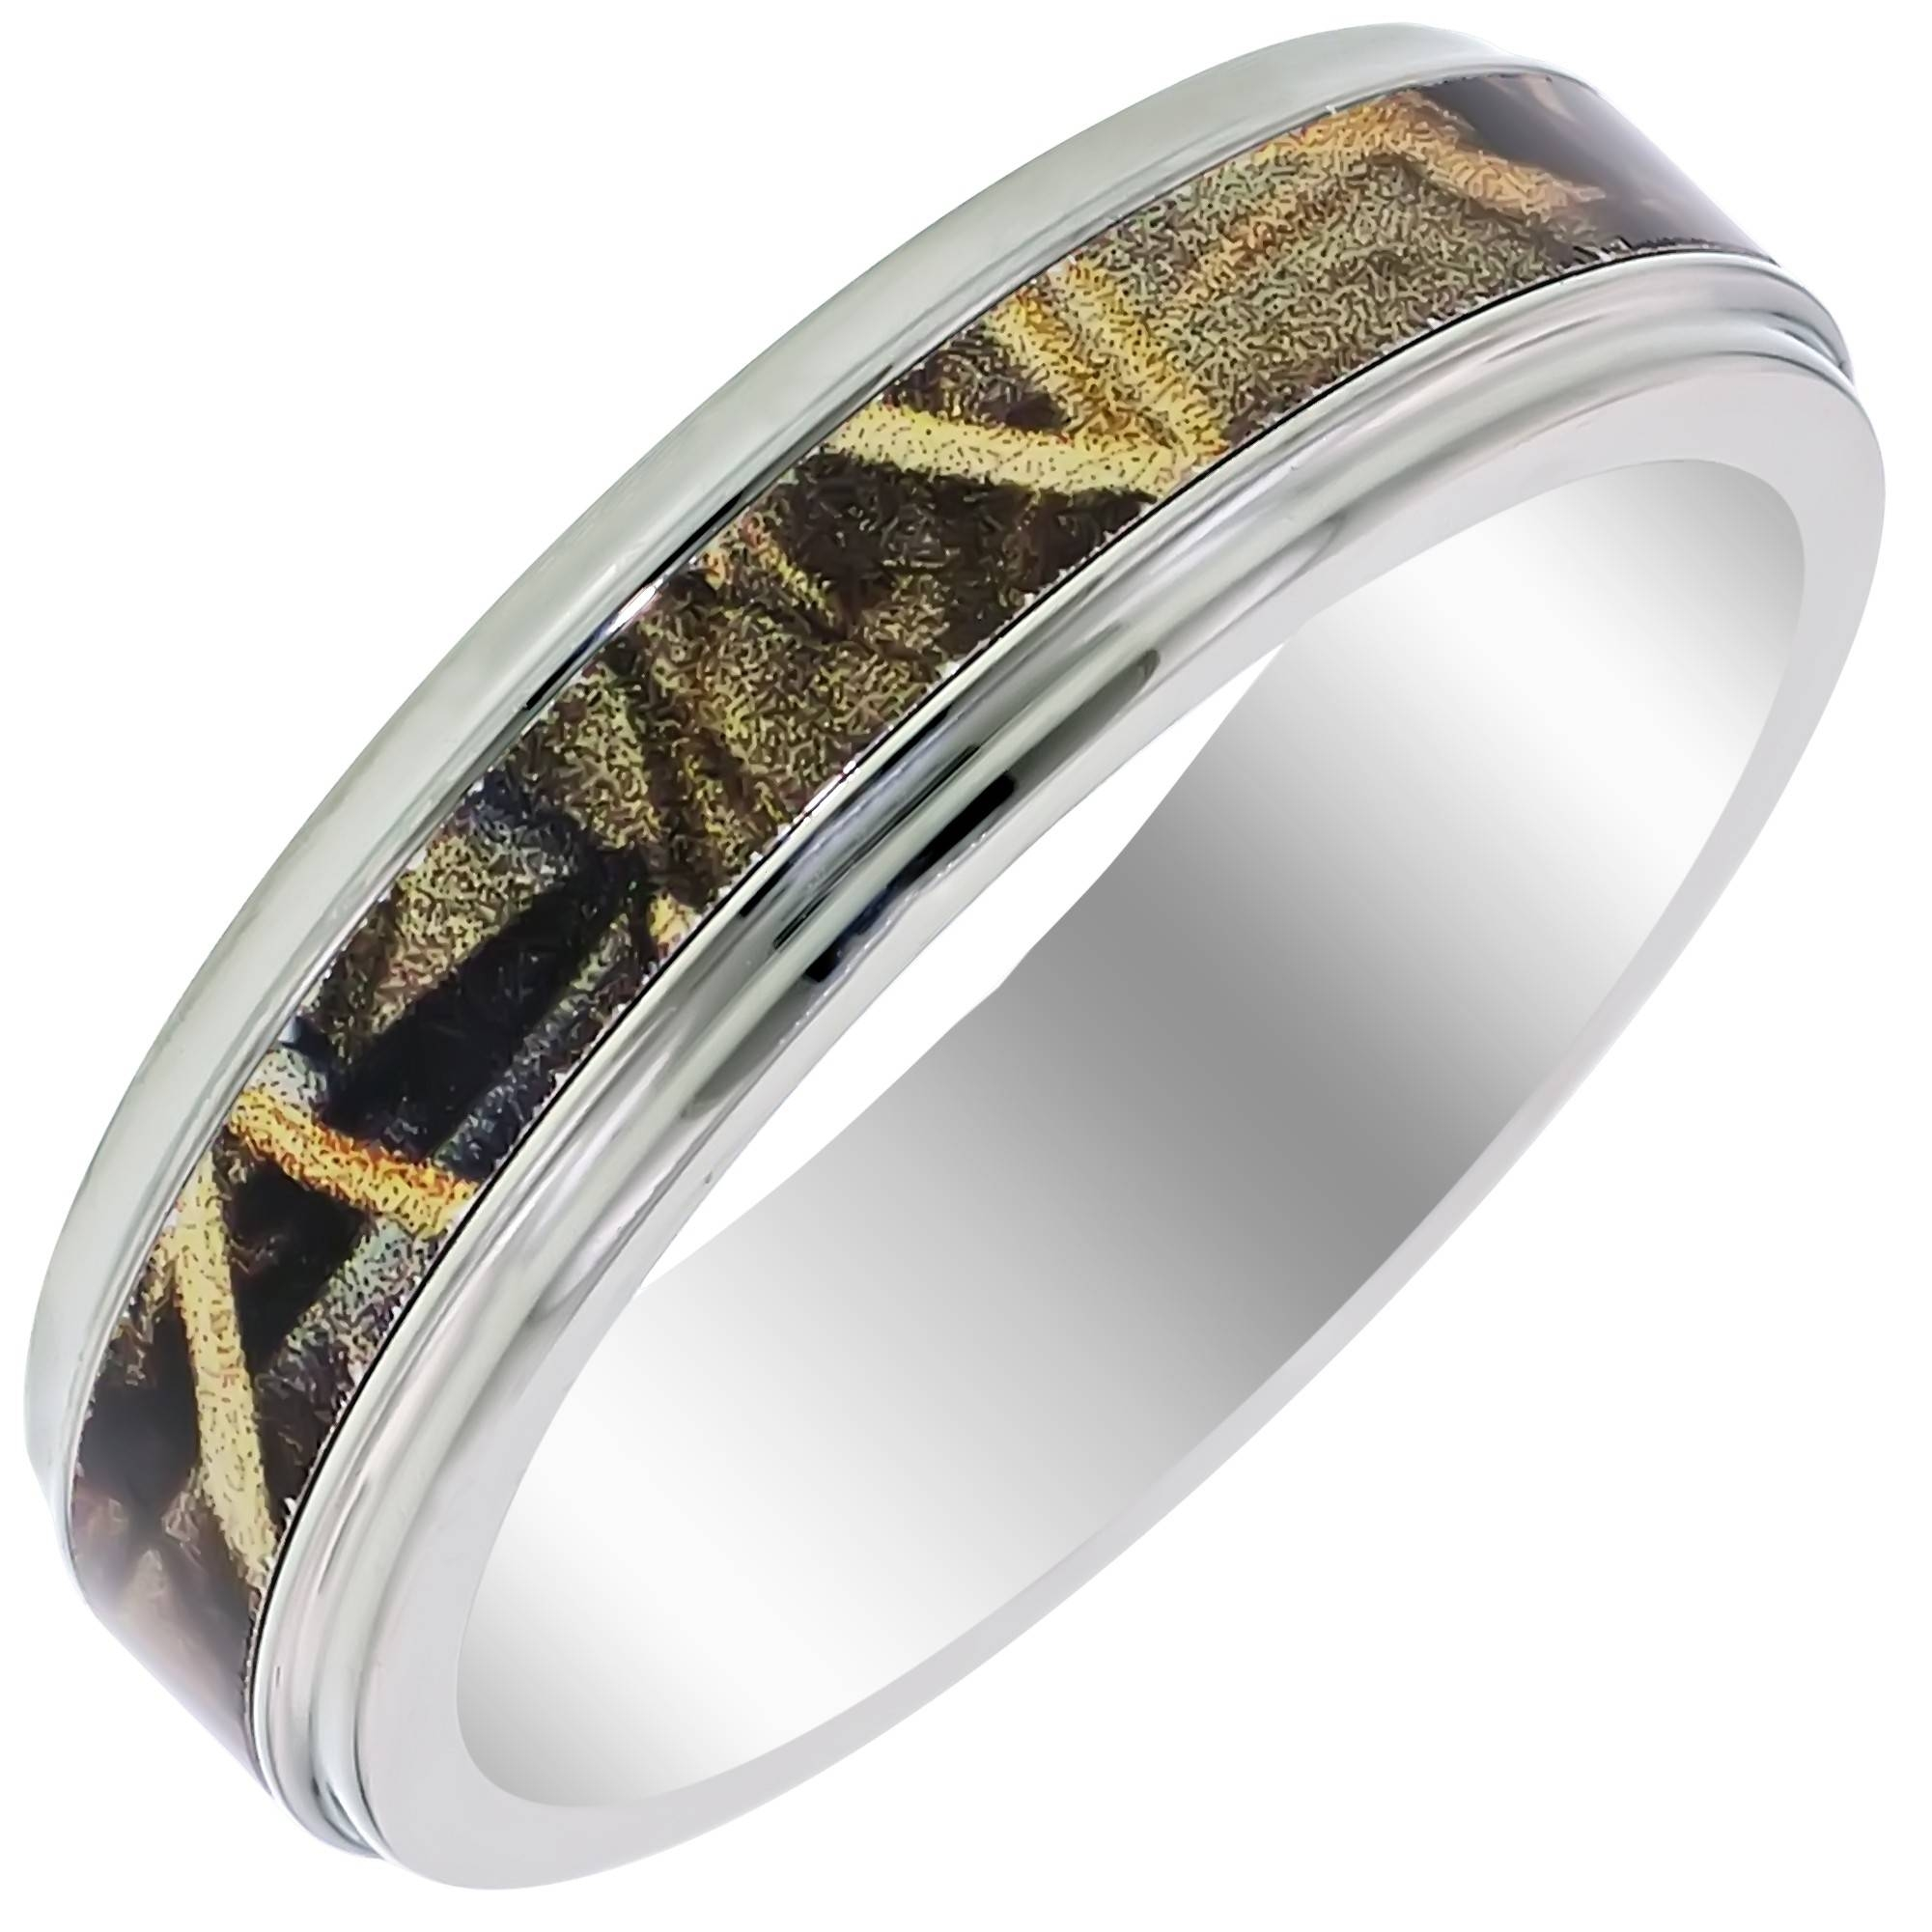 Camouflage Wedding Rings | Tomichbros Regarding Camouflage Wedding Bands For Him (View 5 of 15)